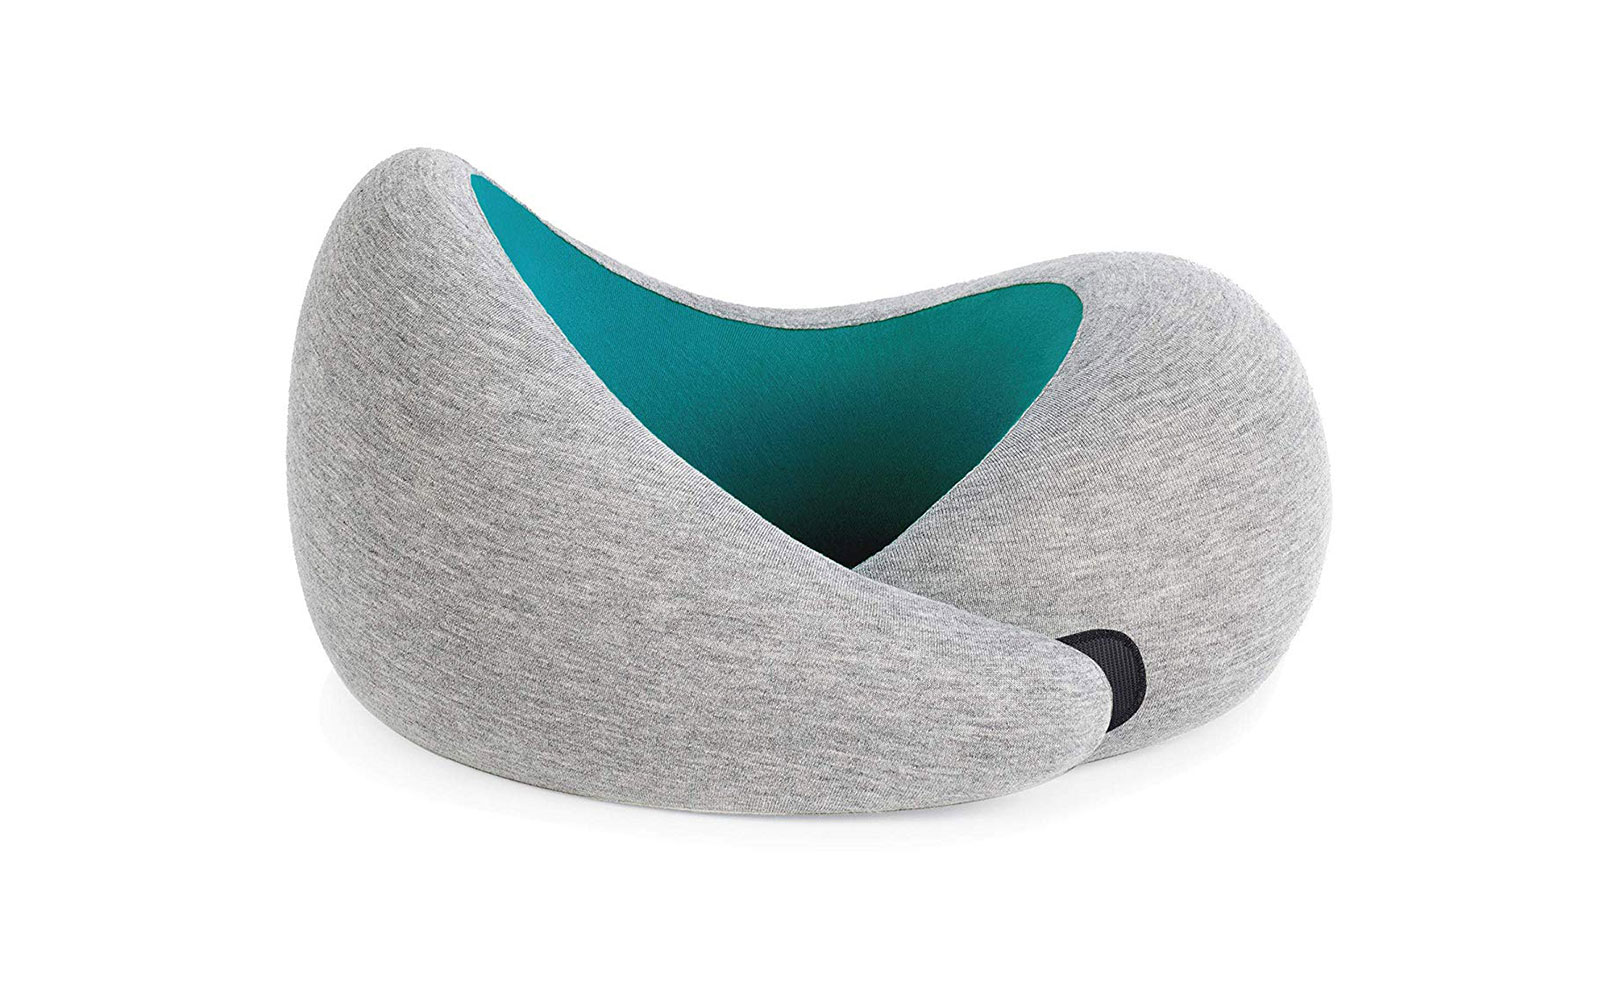 These pillows will help you nap anywhere — and they're on sale for Prime Day